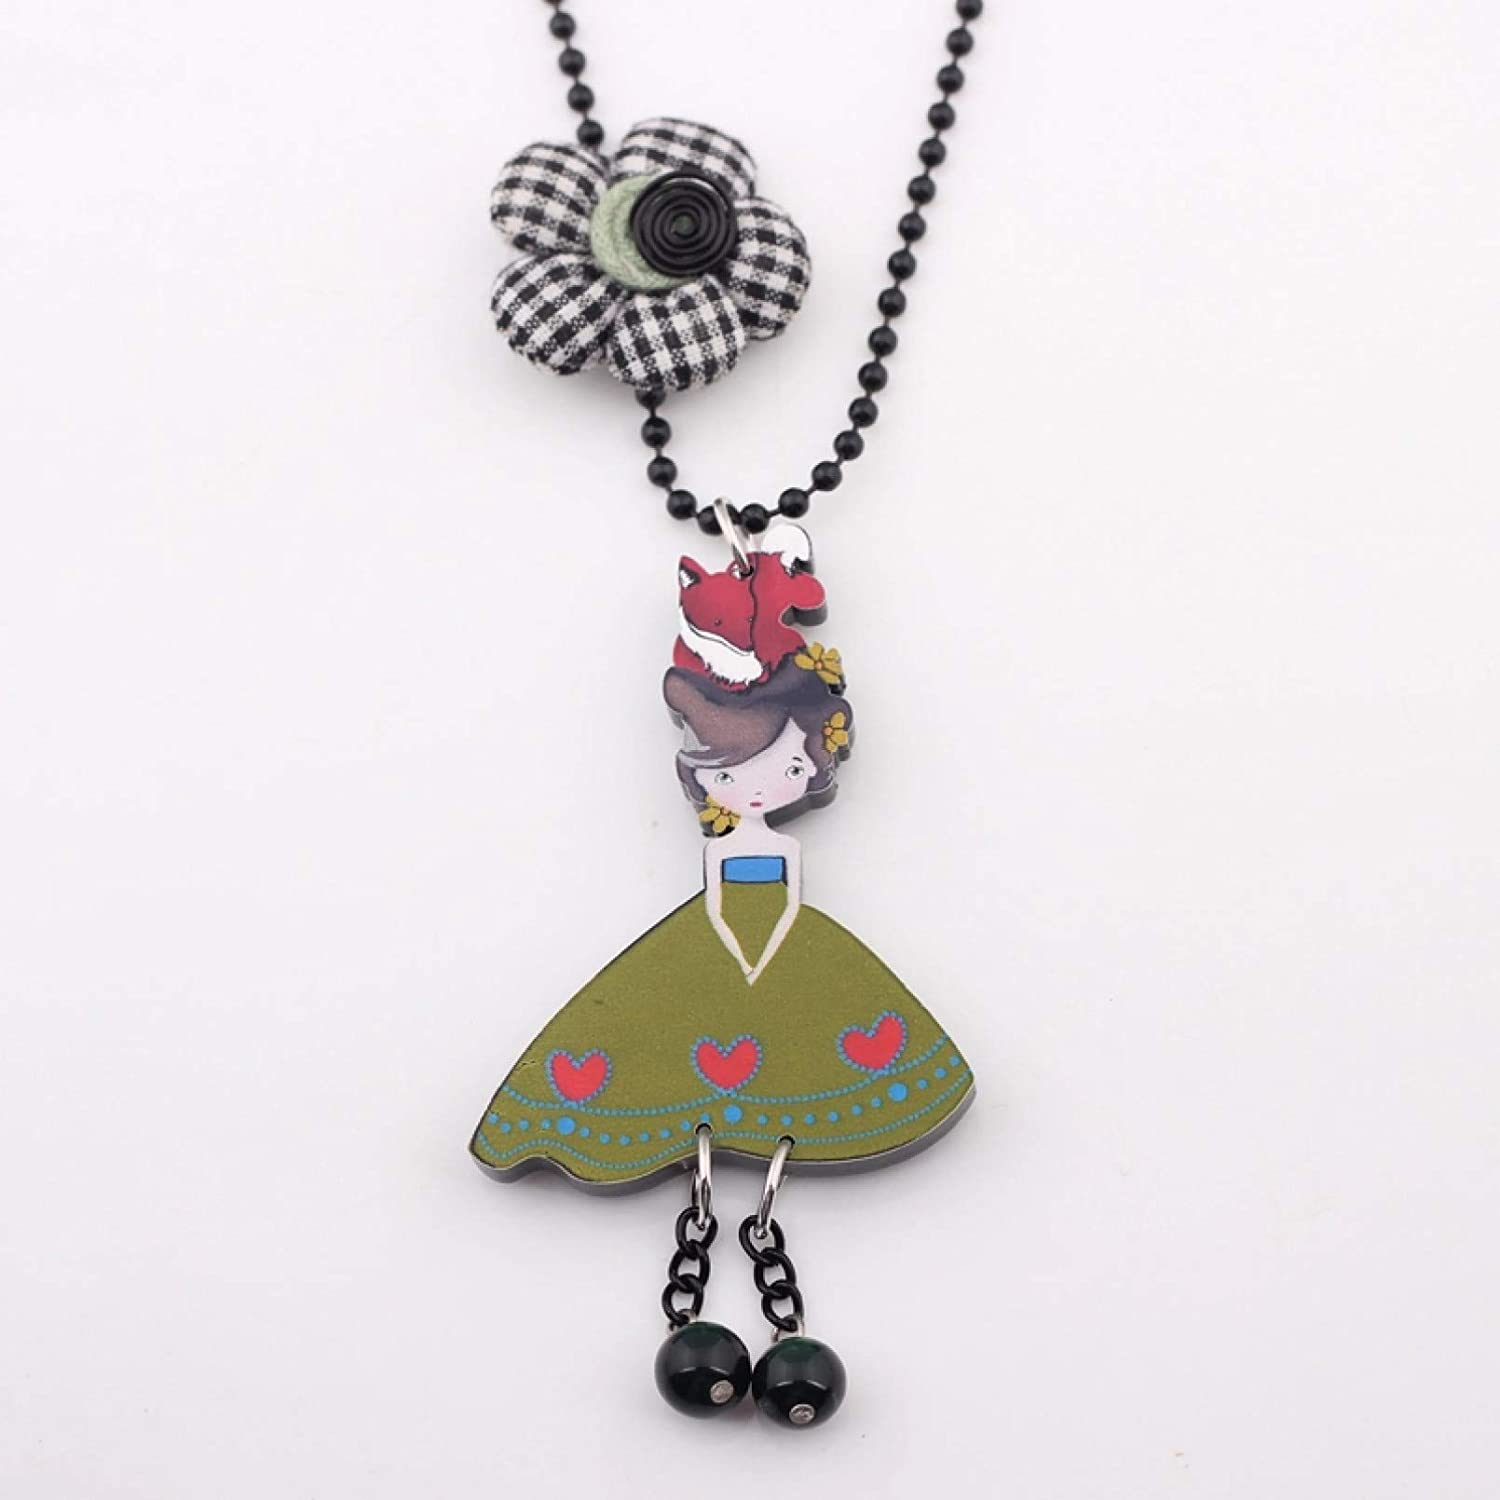 N/A Necklace Pendant Gentle Girl & Pendant Necklace Collar Colorful for Girls Lovely Cute Figure Acrylic Women Jewelry Fairy Wings Christmas Birthday Gift